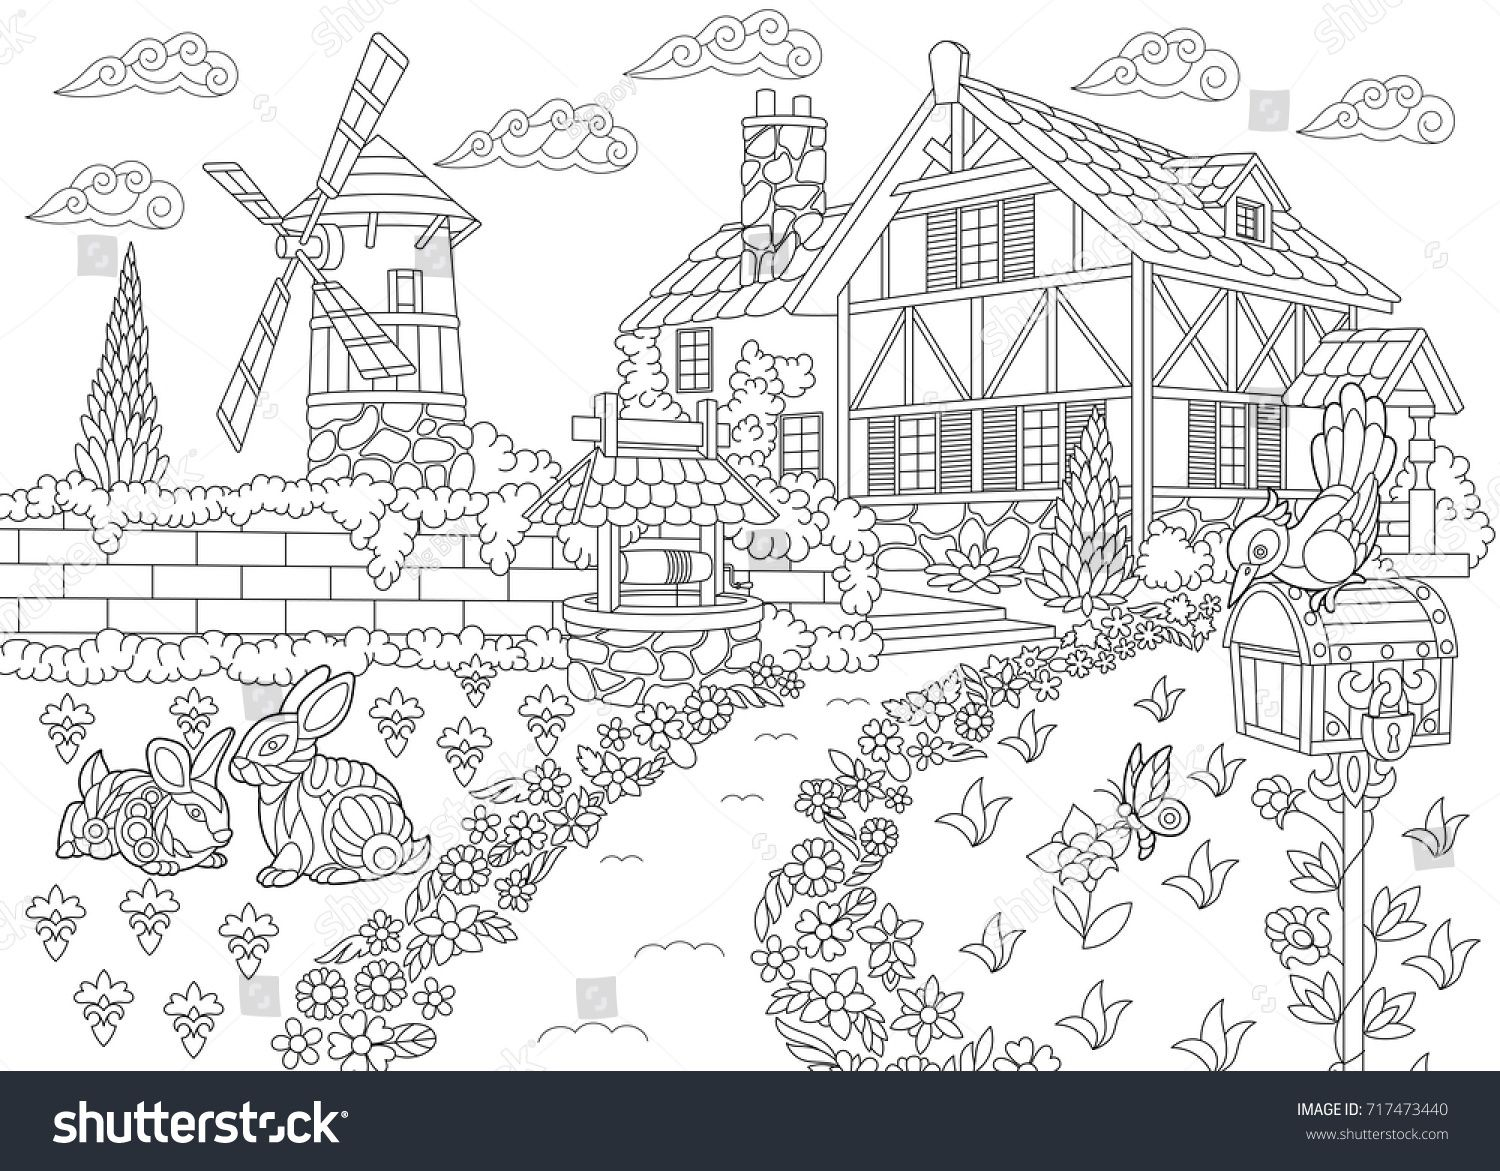 Stock Vector Coloring Page Of Rural Landscape Farm House Windmill